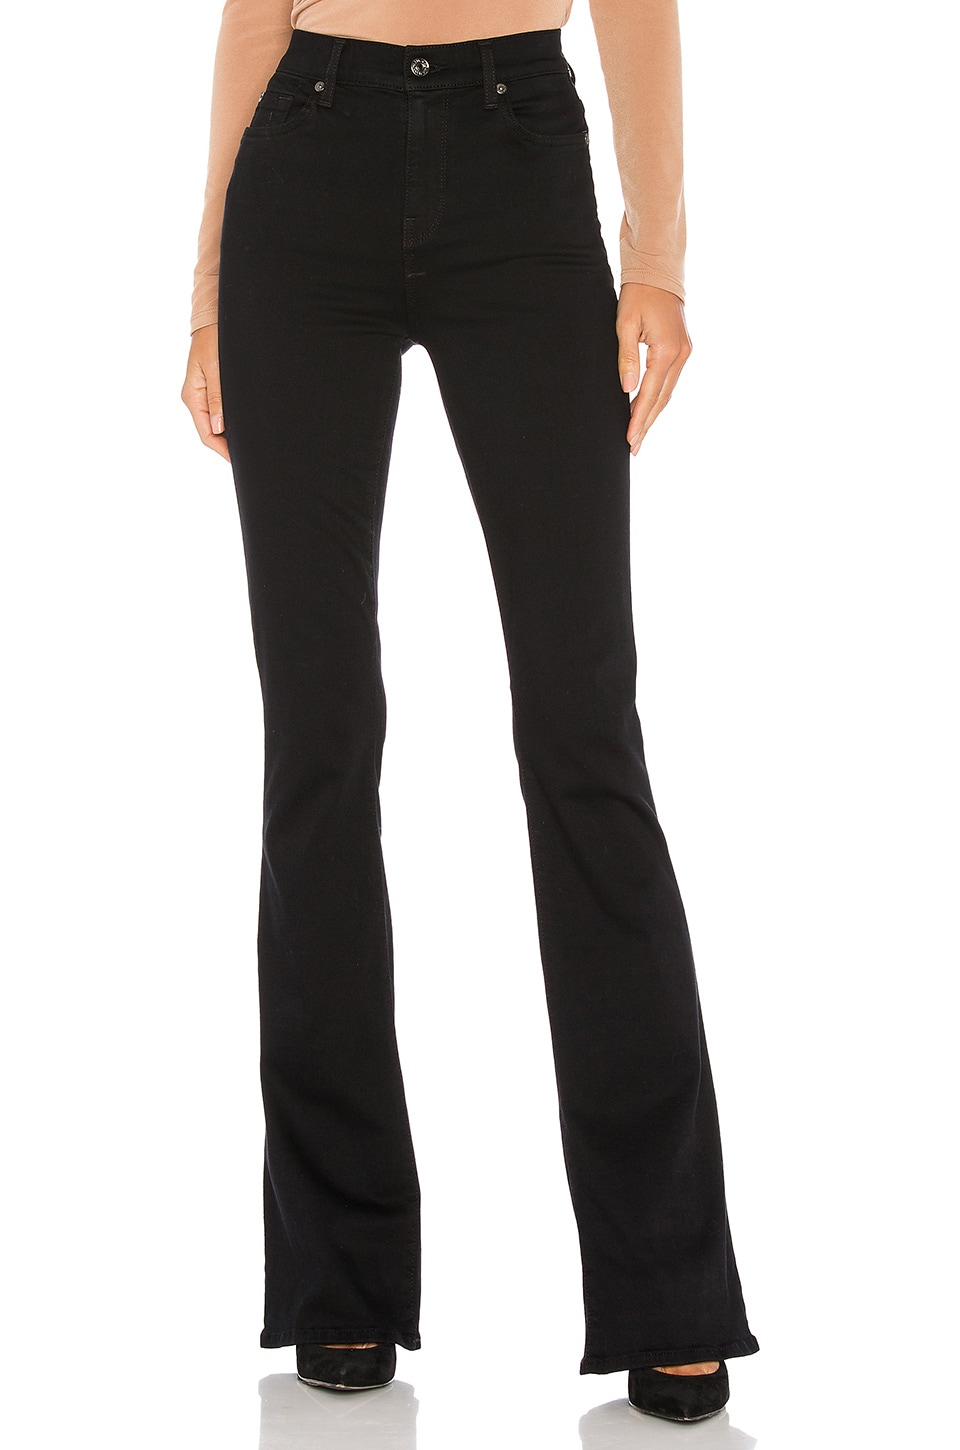 7 For All Mankind High Waist Ali Bootcut in Slim Illusion Luxe Black